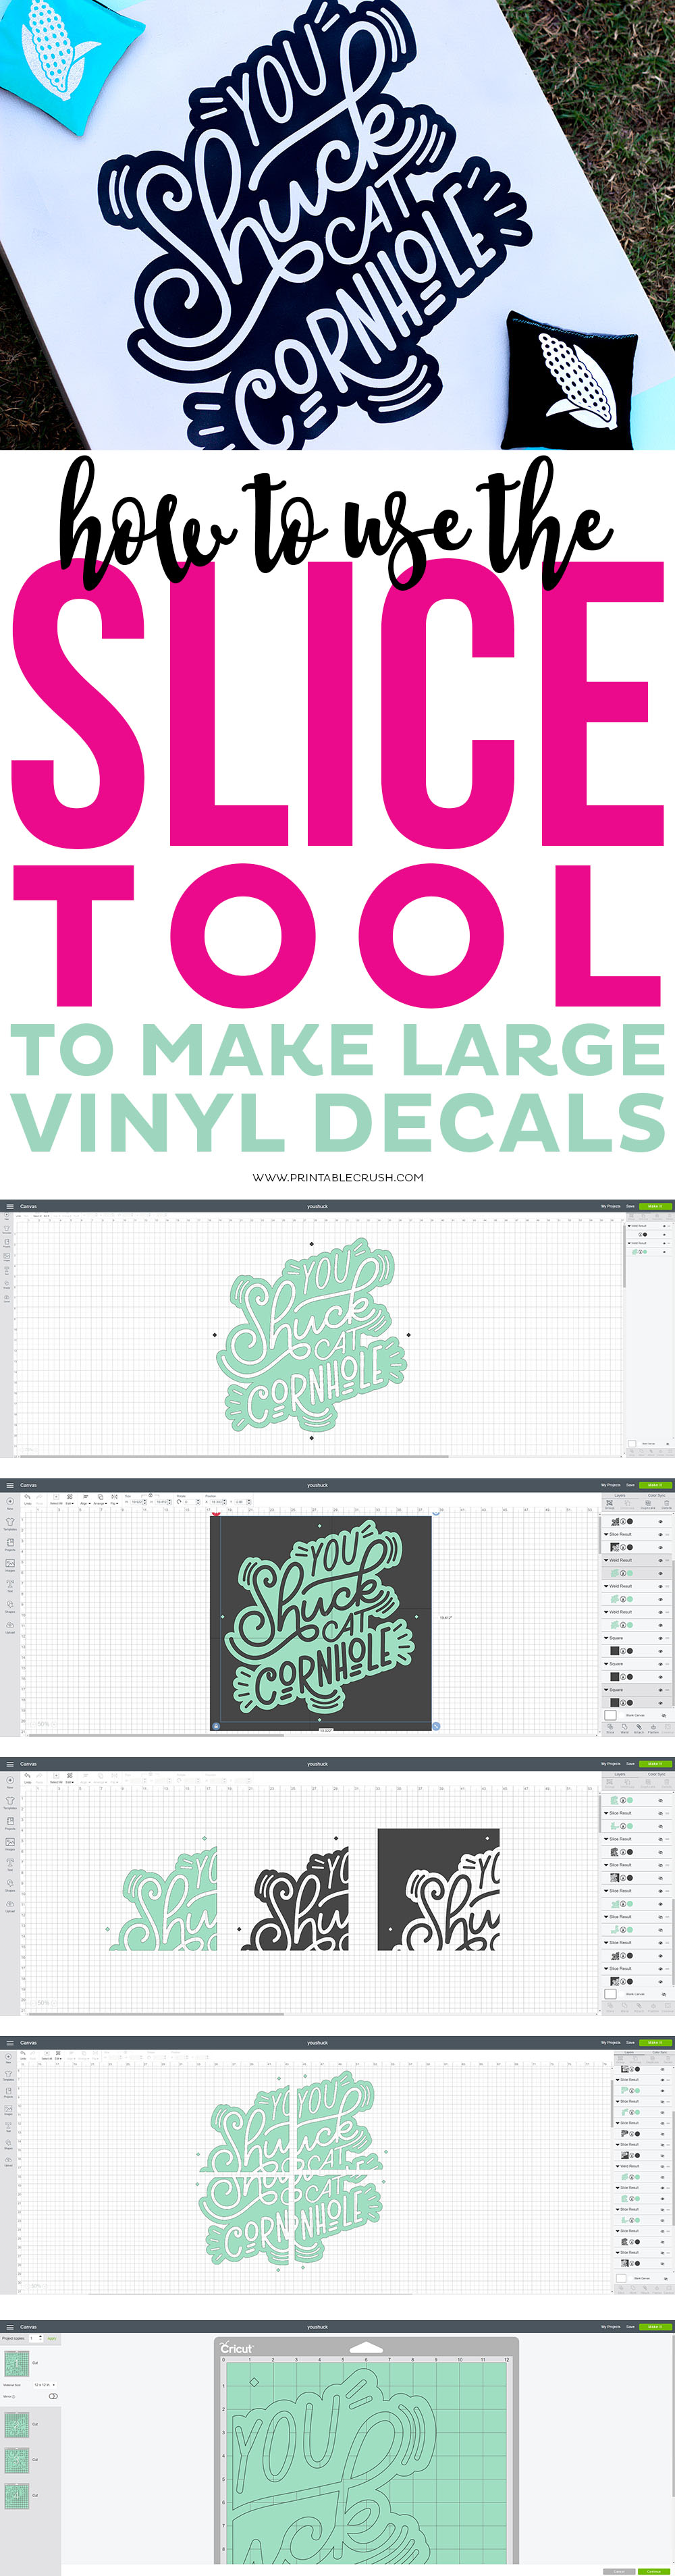 making large vinyl decals step-by-step long collage